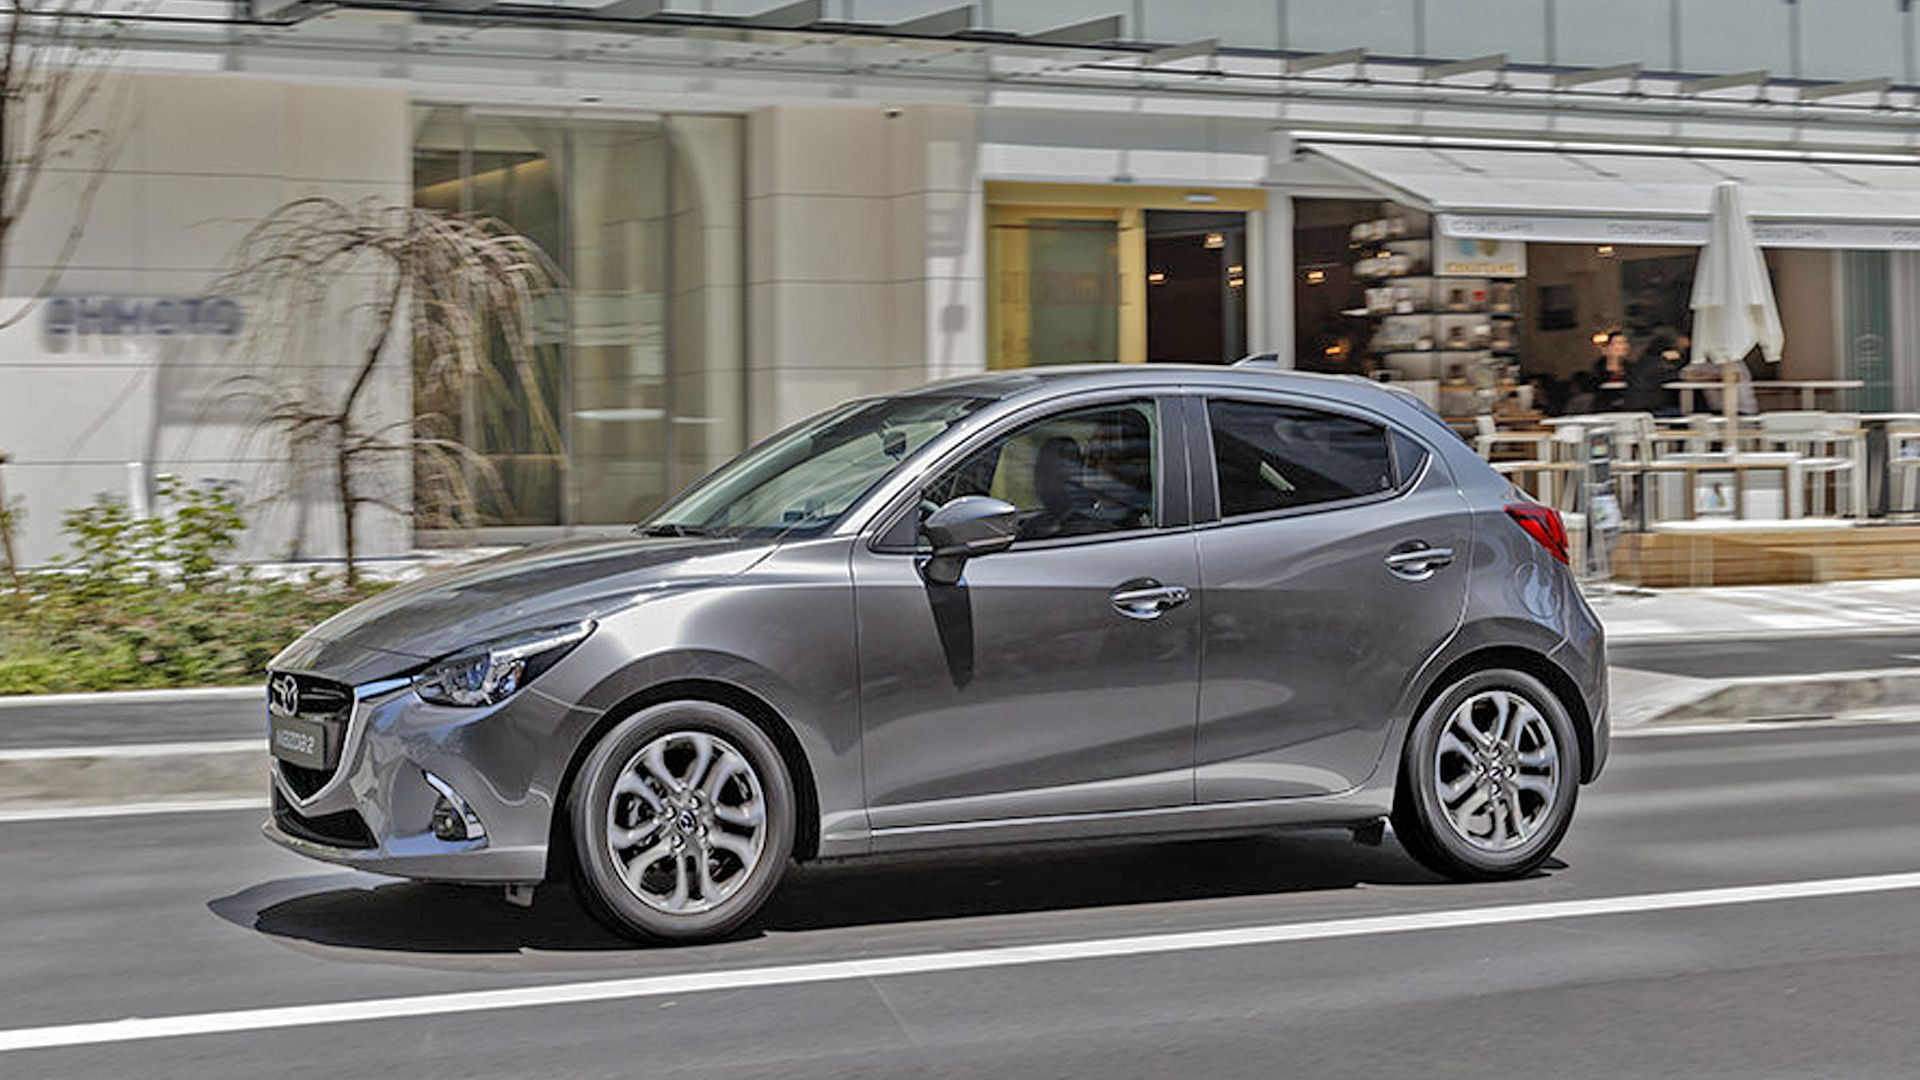 2019 mazda 2 first pictures good cars 2018 2019 model year rh pinterest com